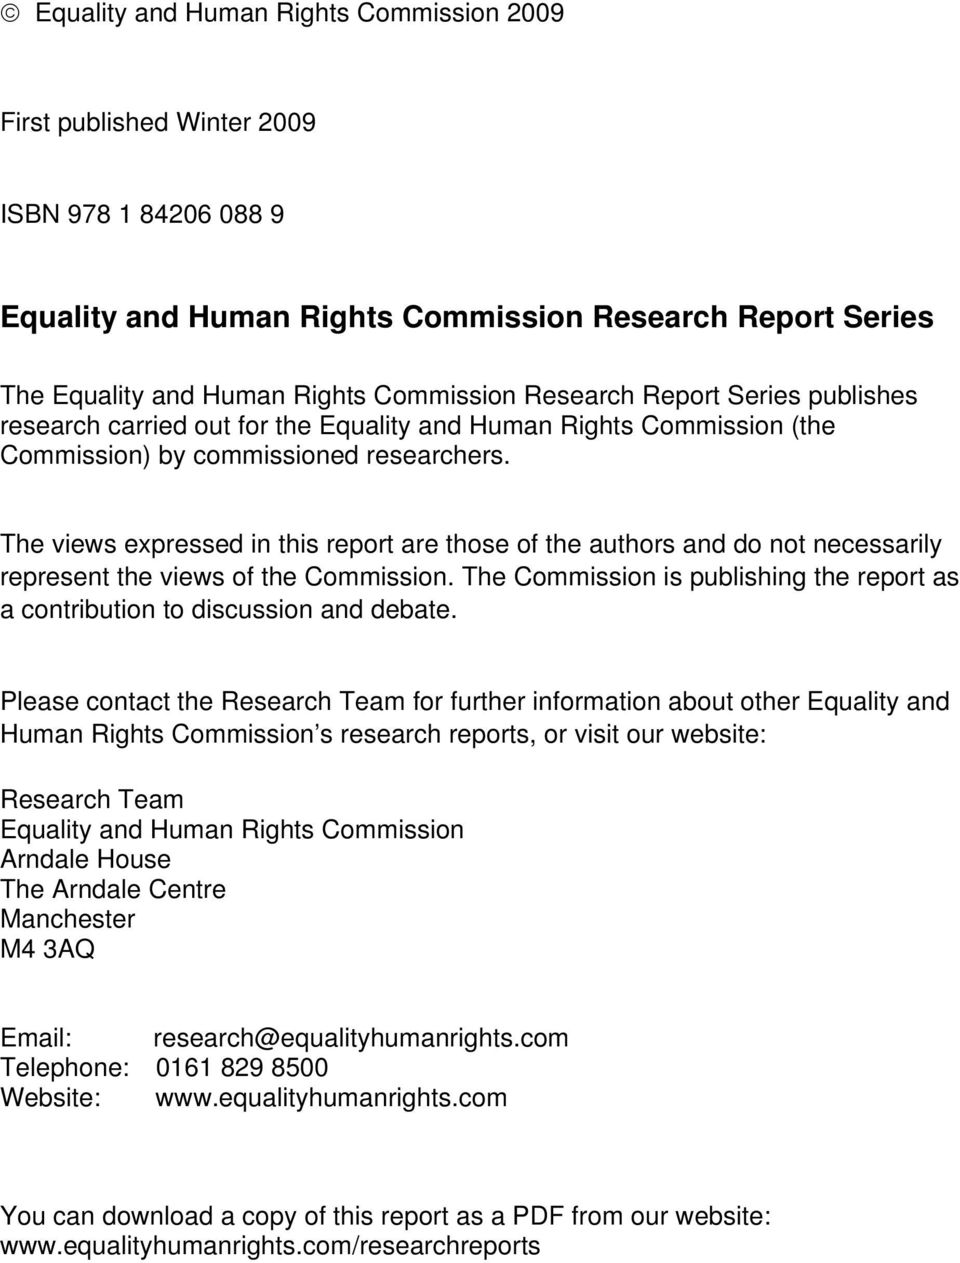 The views expressed in this report are those of the authors and do not necessarily represent the views of the Commission.